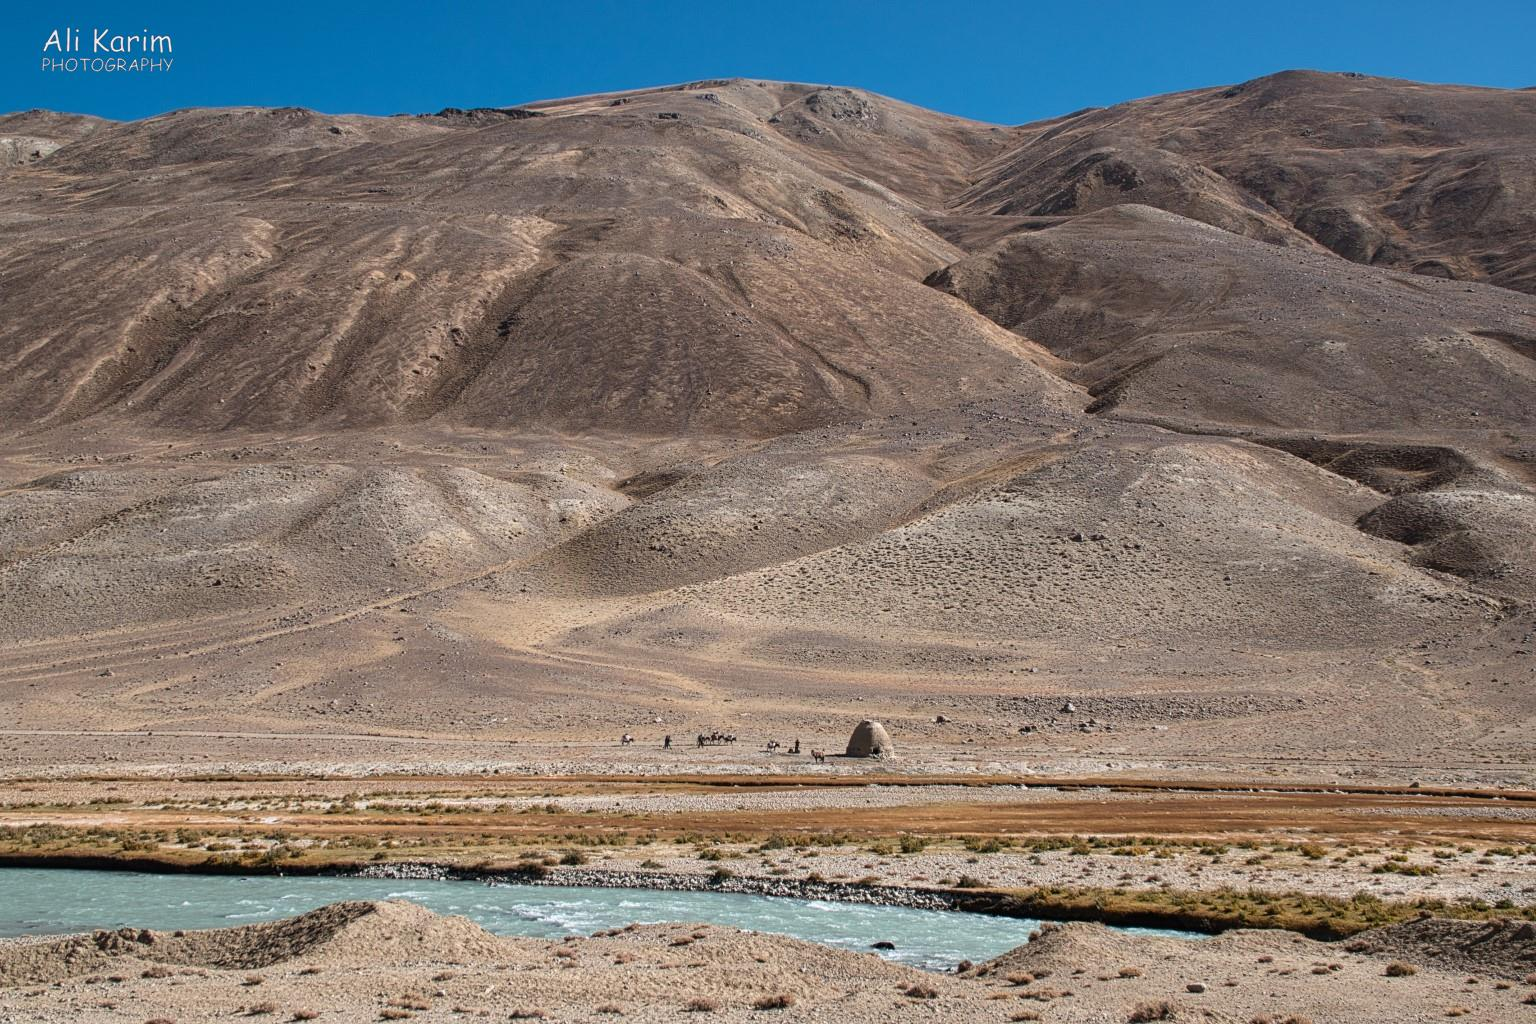 Langar, Tajikistan, Caravan and Caravanserai in the harsh landscape; perspective